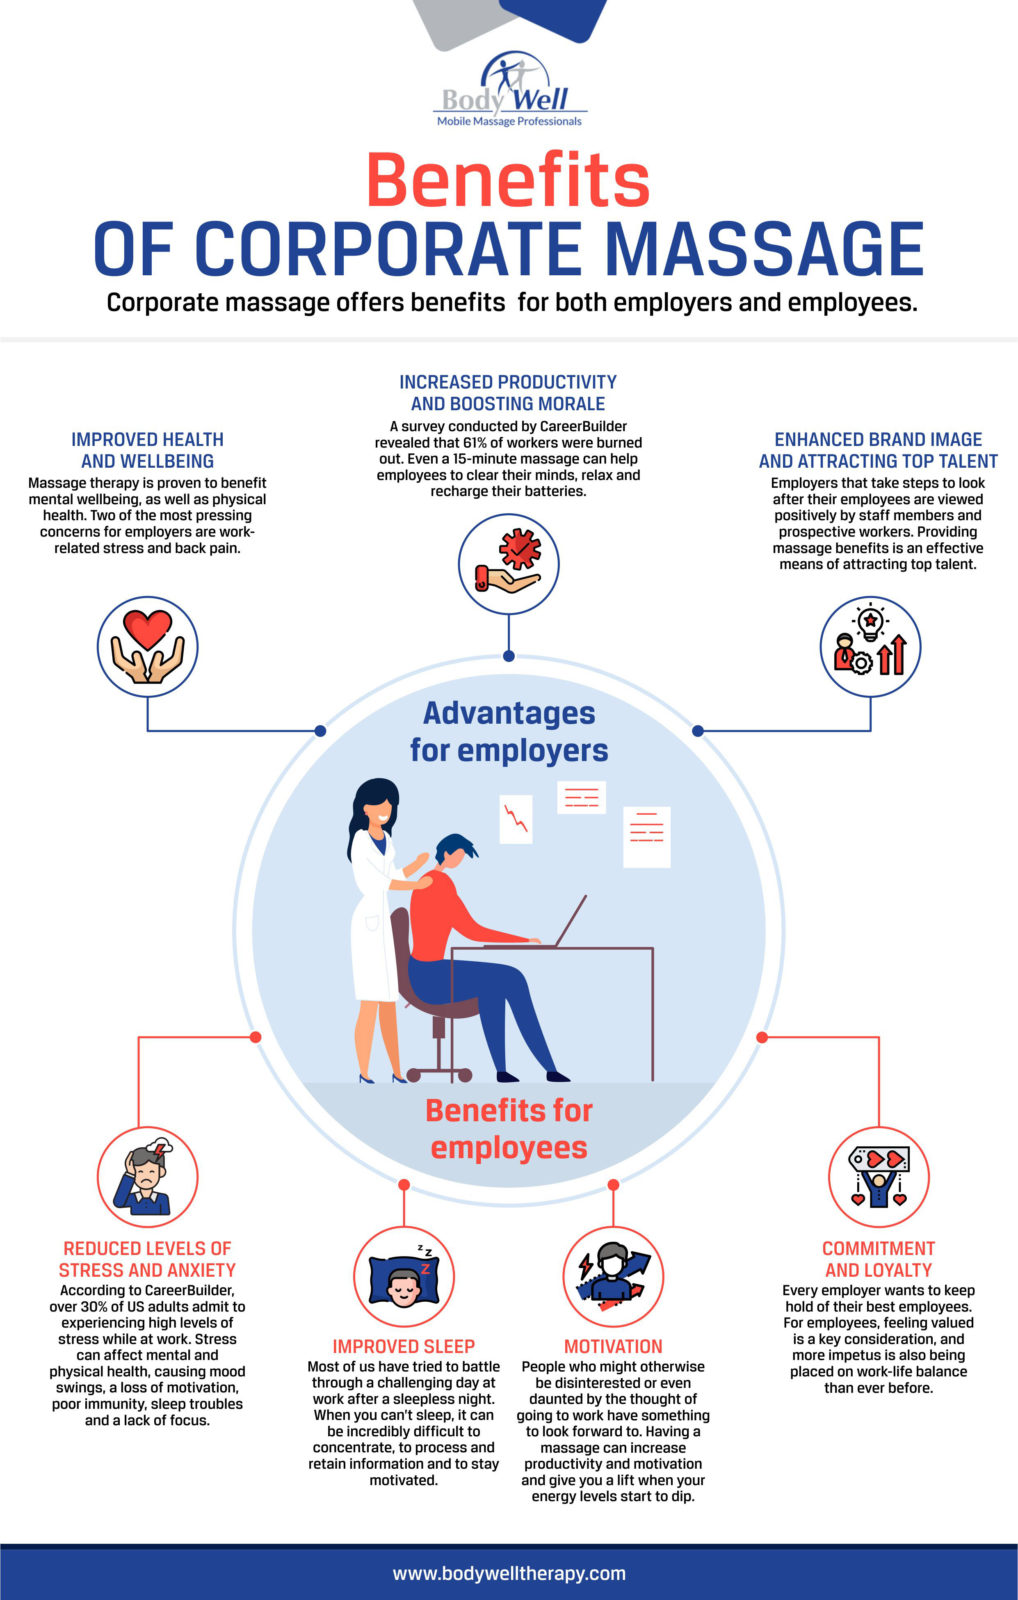 benefits of corporate massage infographic v2